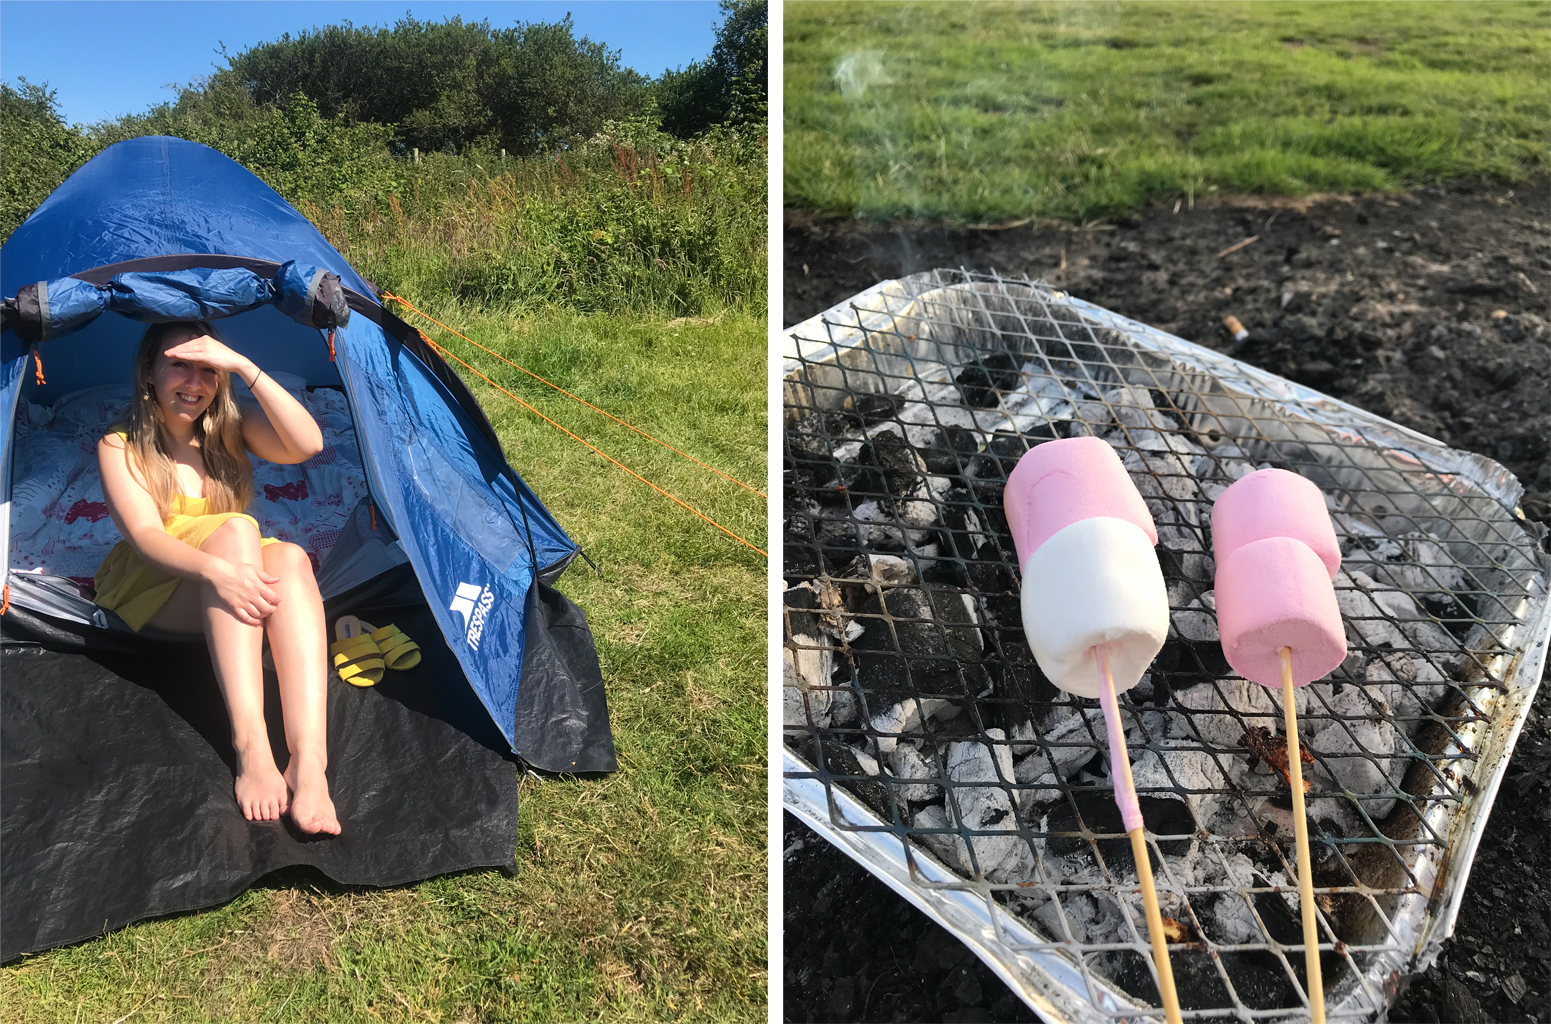 Me camping, tent, disposable bbq, camping bbq